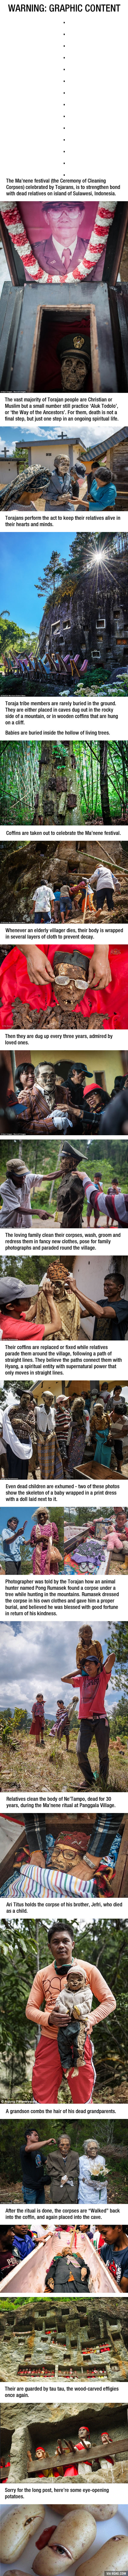 (Graphic)Torajan Villagers Honour Ancestors By Digging Up And Beautifying Them In Ma'nene Festival